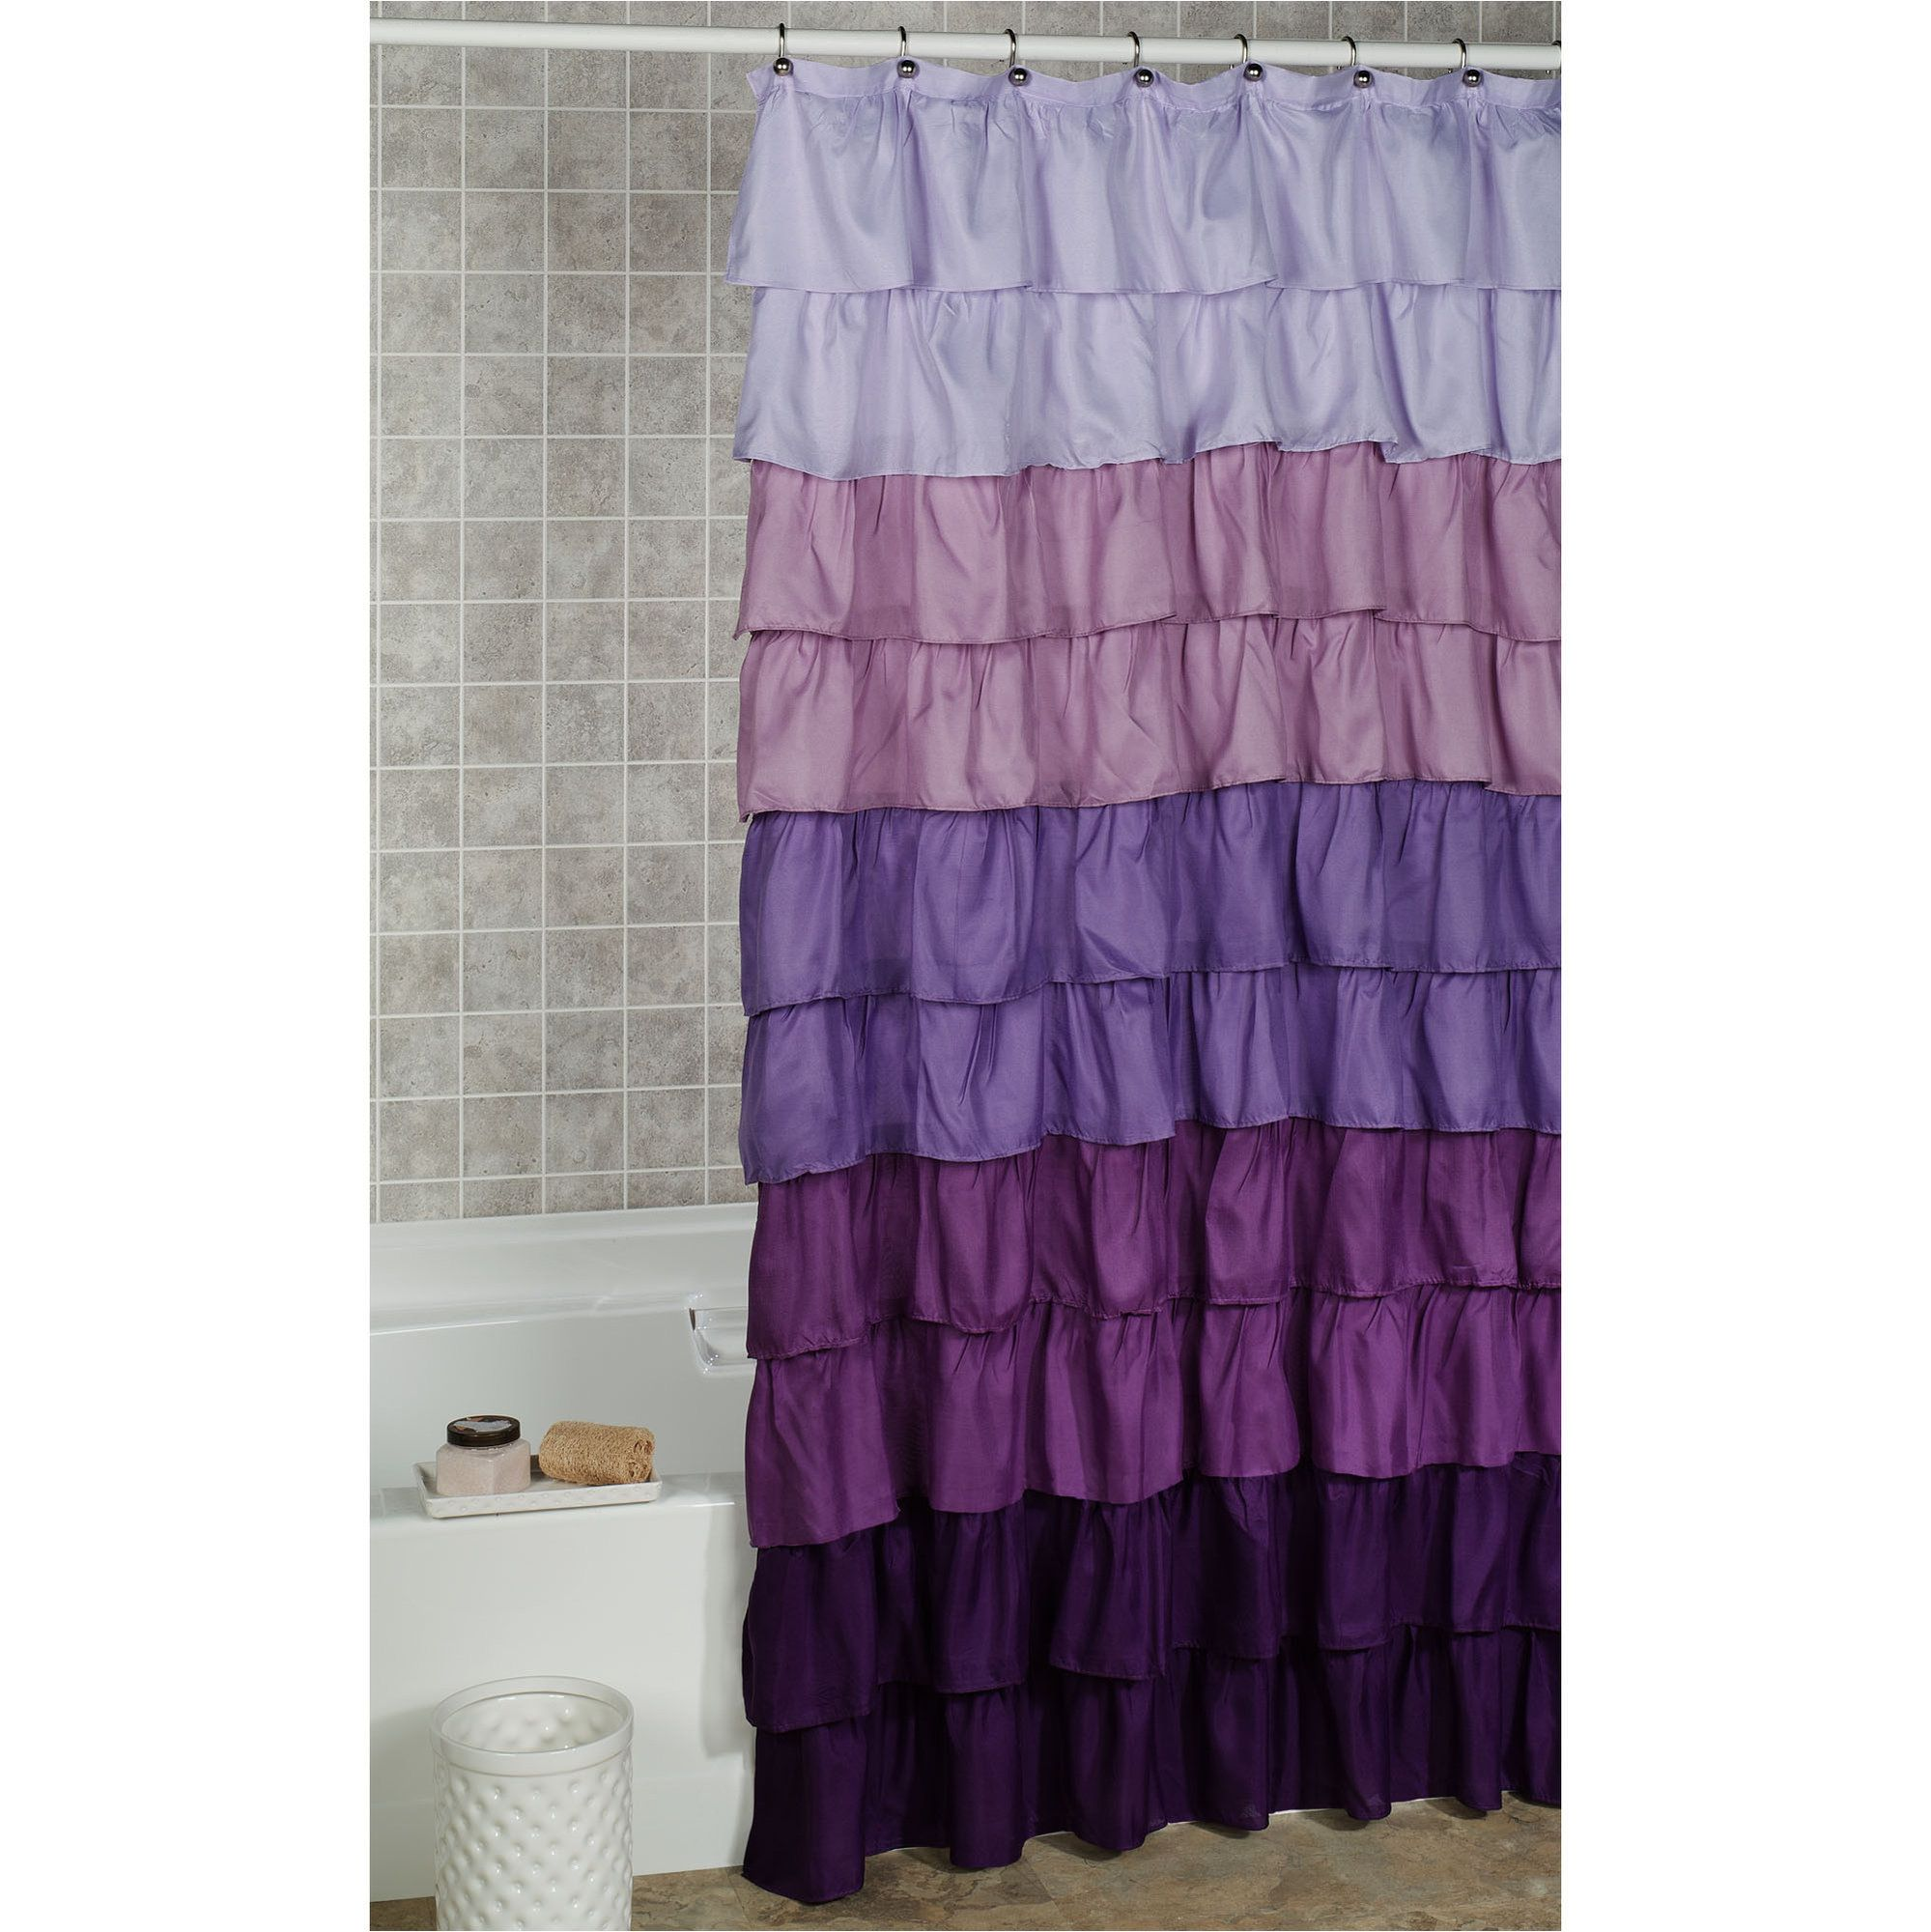 Maribella Lavender Ombre Ruffled Shower Curtain | Ruffle shower ...